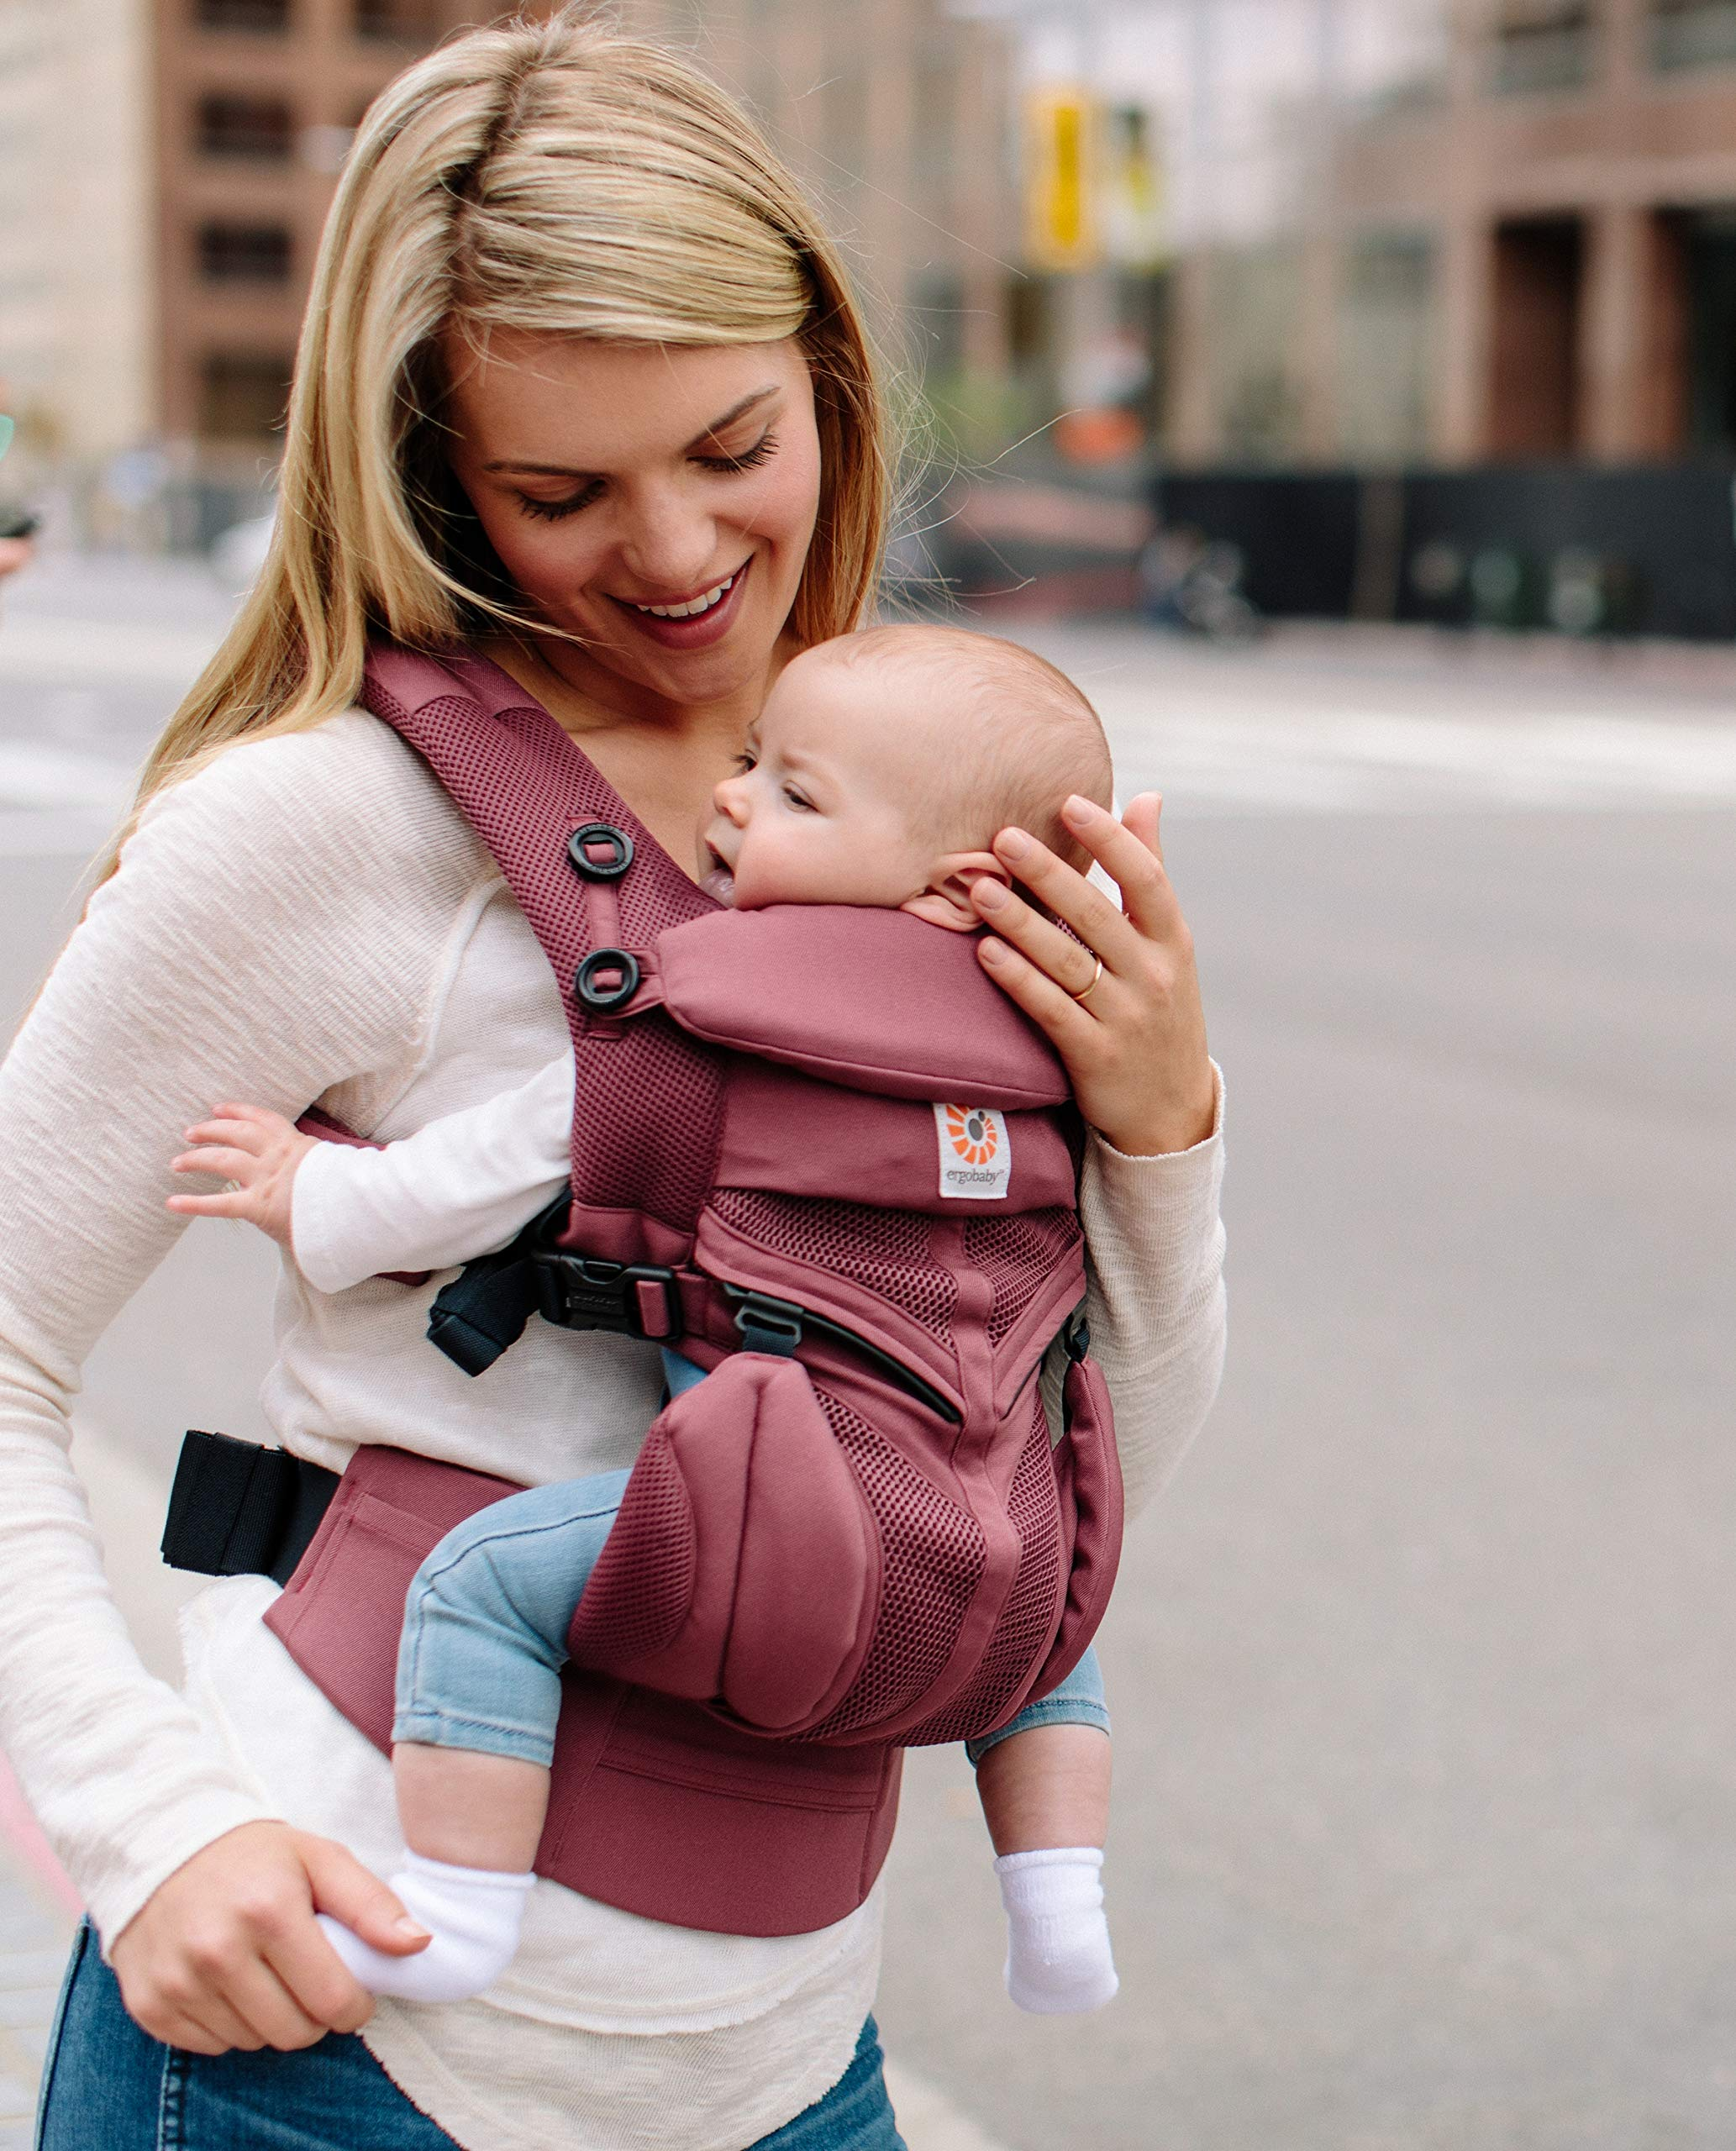 Ergobaby Baby Carrier for Newborn to Toddler, 4-Position Omni 360 Cool Air Plum, Breathable Ergonomic Child Carrier & Backpack Ergobaby BABY CARRIER FOR NEWBORN - Adapts to your growing baby from birth to toddler (7-45lbs). 4 carry positions: front-inward, back, hip, and front-outward. A Baby hood for sun protection (UPF 50+) & privacy for sleeping or breastfeeding is included. COMFORT - Exceptional lower back comfort with padded lumbar support waist belt & extra padded shoulder straps with the option to wear 2 ways: crossed or backpack style. Waist belt can be worn high or low to maximize comfort. COOL & BREATHABLE - Our Cool Air Mesh baby carriers are made with soft and durable mesh fabric that provides our renowned ergonomic support for baby while allowing for ultimate breathability and airflow 5